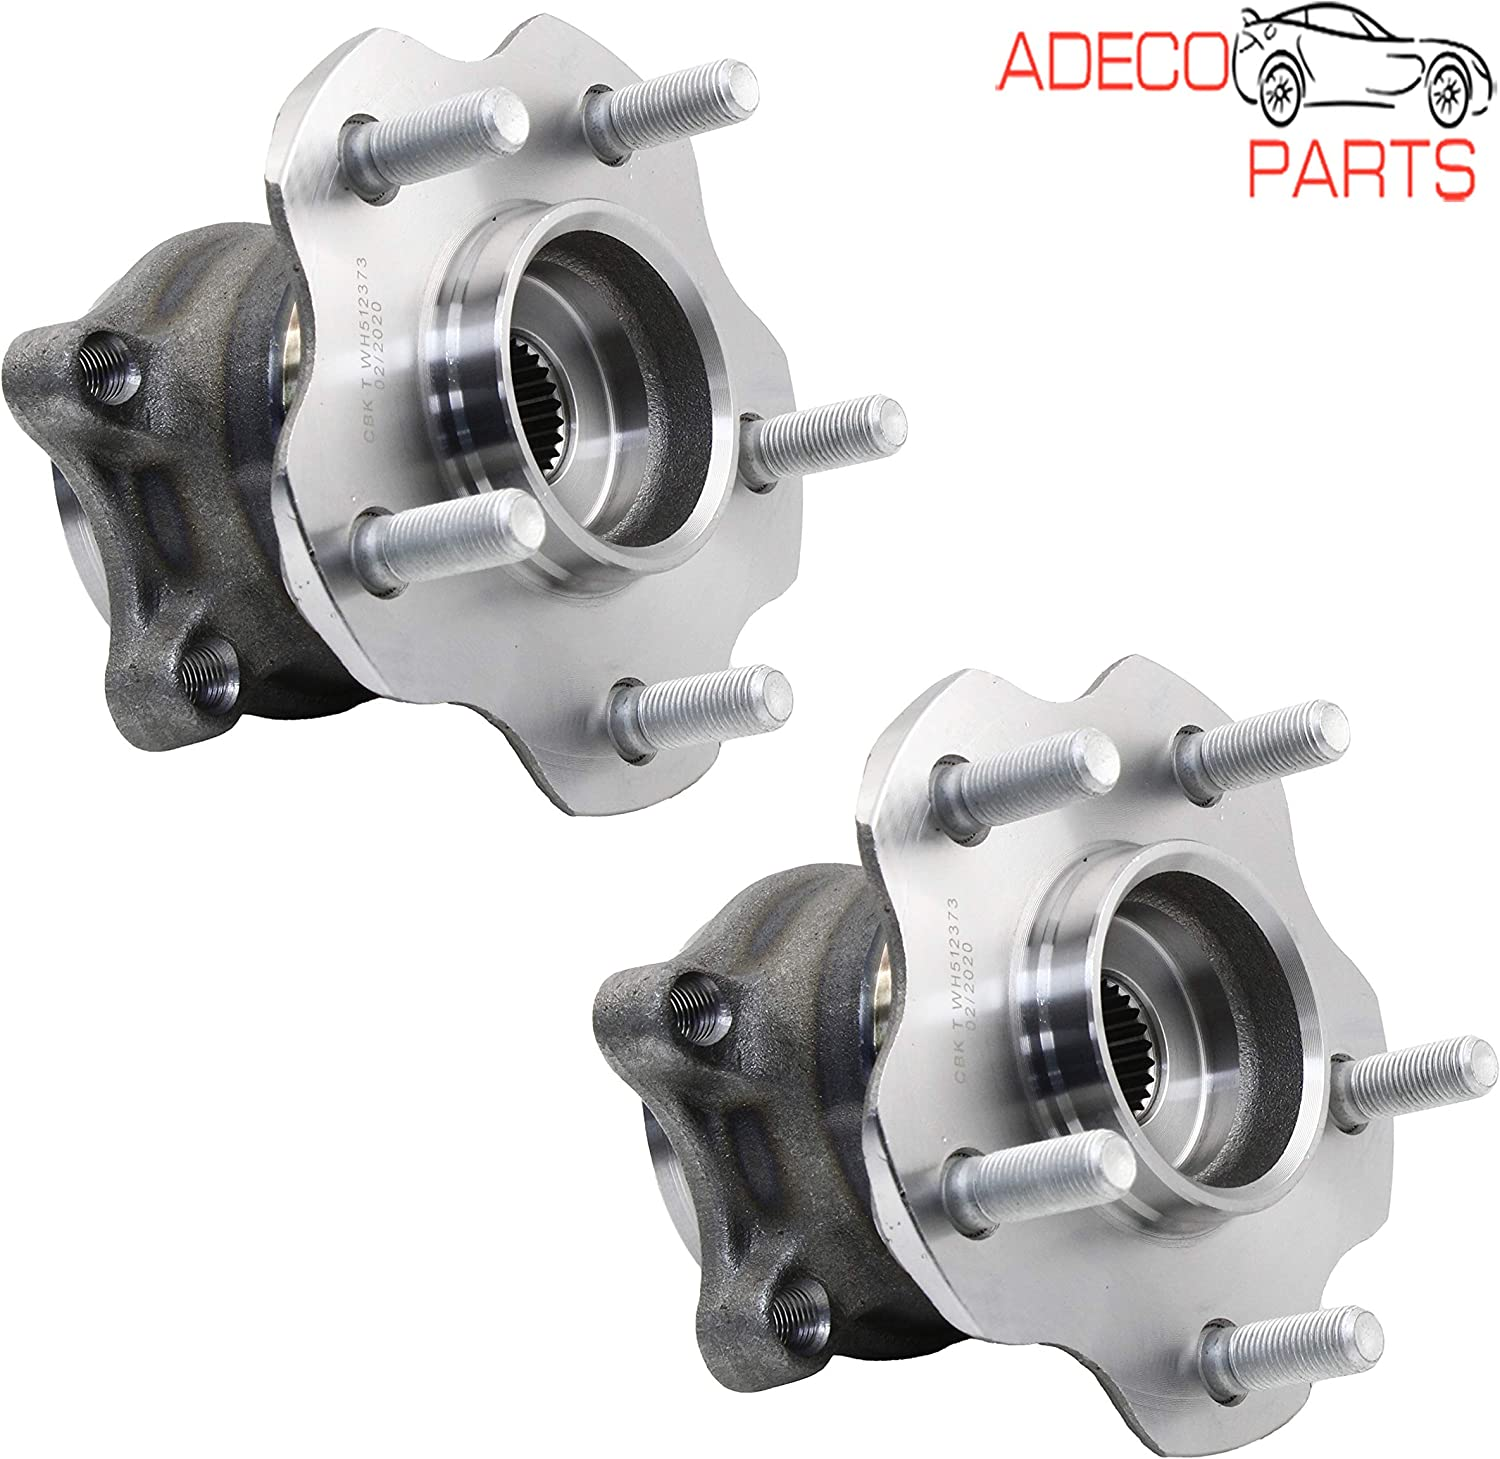 AWD AdecoAutoParts/© Two 512373 Rear Wheel bearing Hub Assembly for Nissan Rogue 2008 2009 2010 2011 2012 2013 Juke 2011 2012 2013 2014